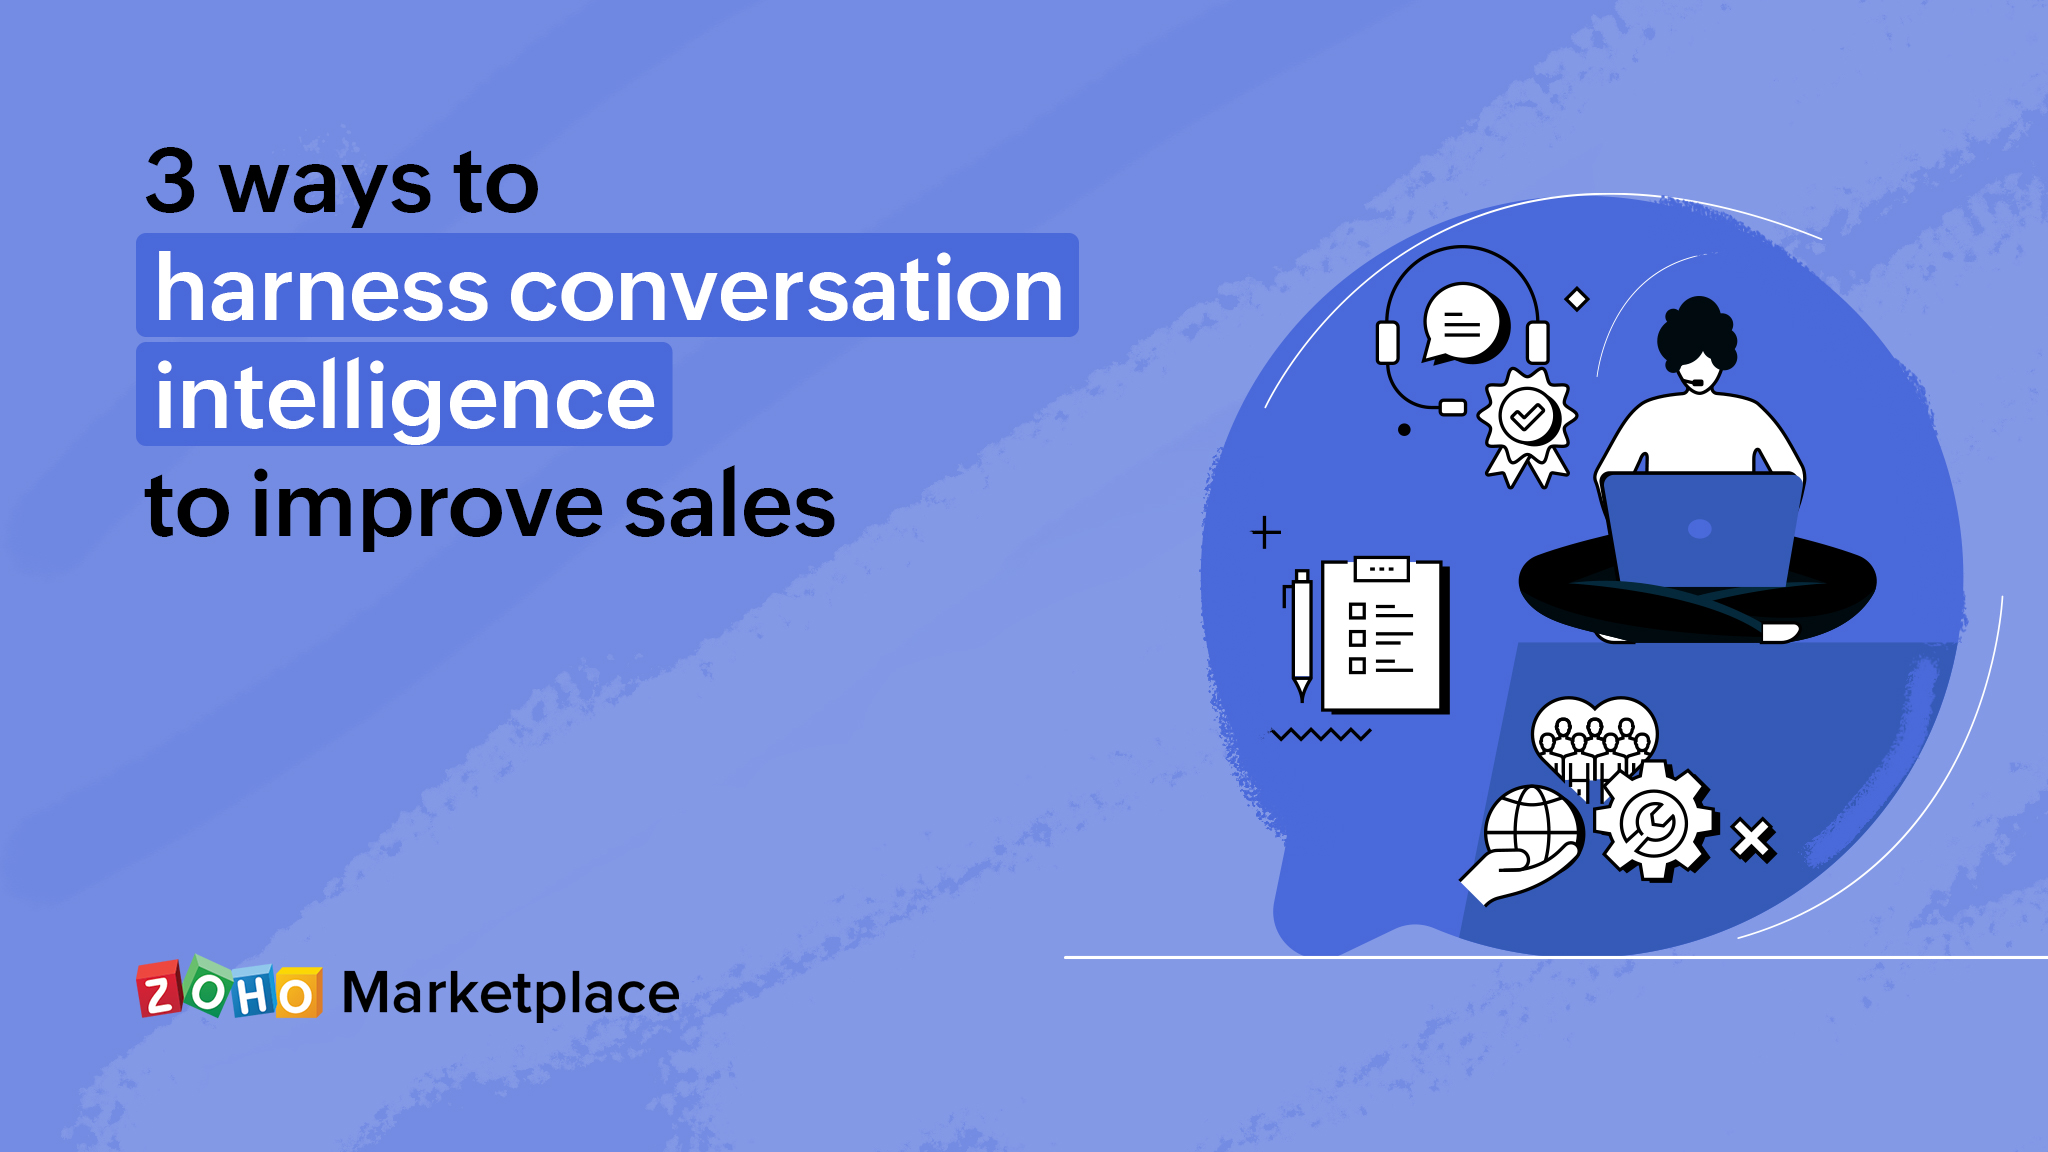 3 ways to harness conversation intelligence to improve sales